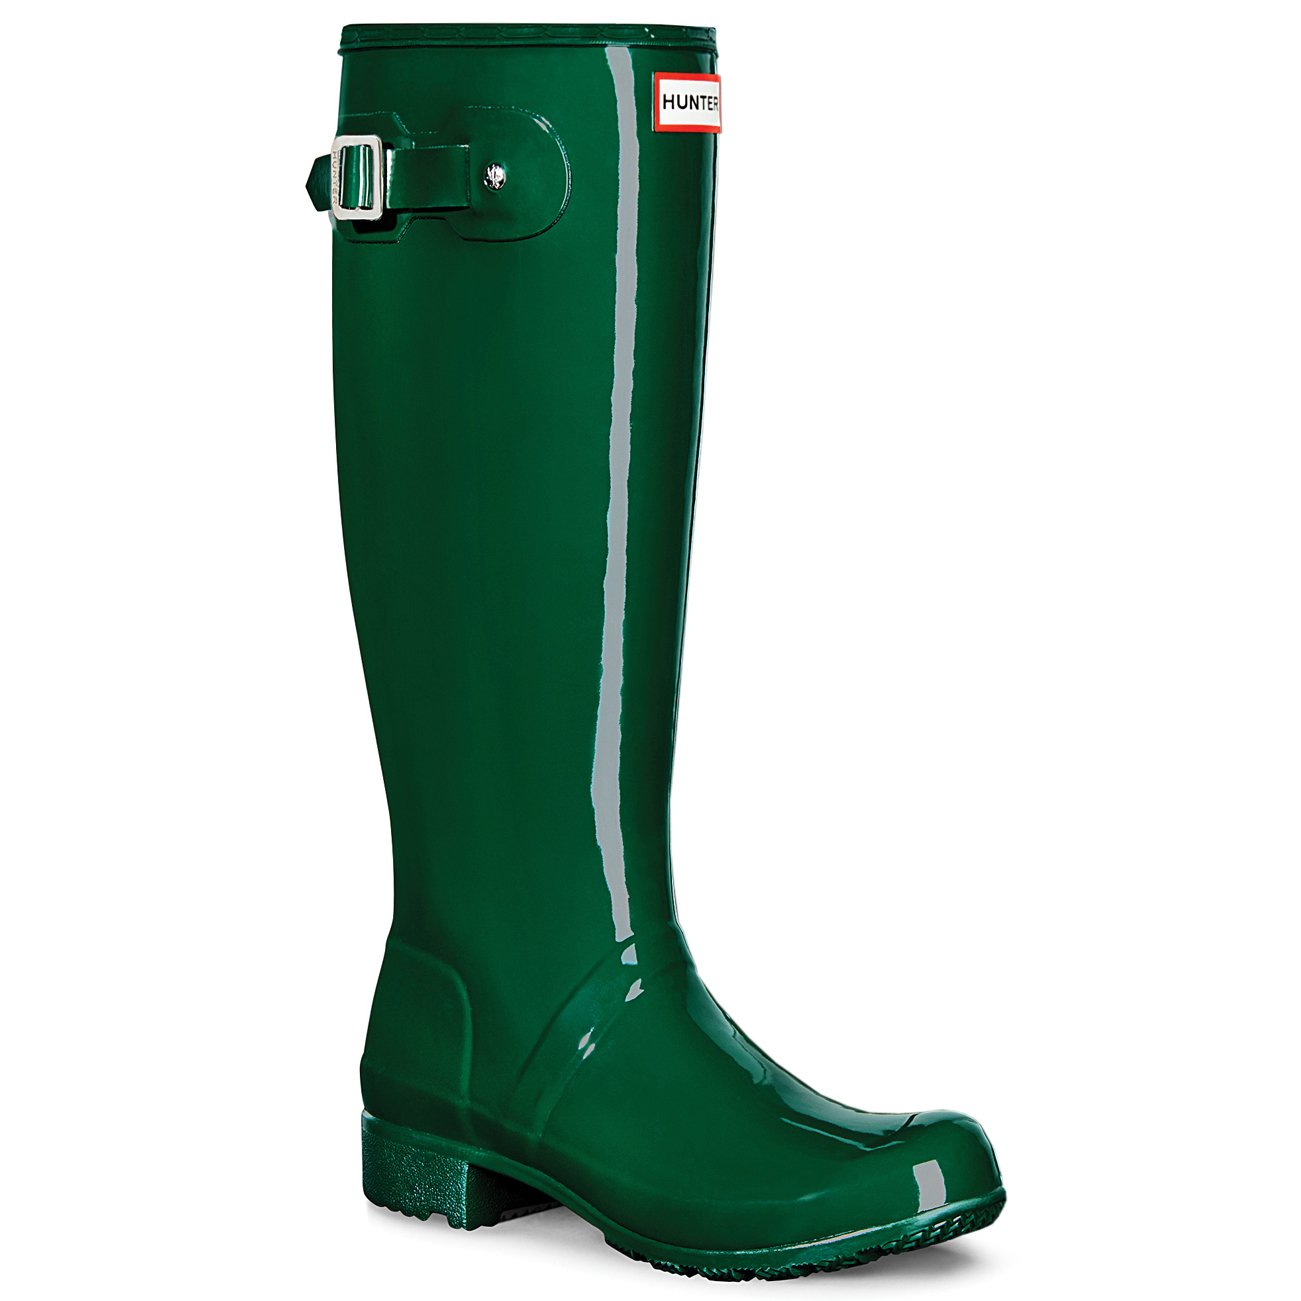 Hunter Womens Original Tour Gloss B00WPSZI0C 5 B(M) US|Hunter Green